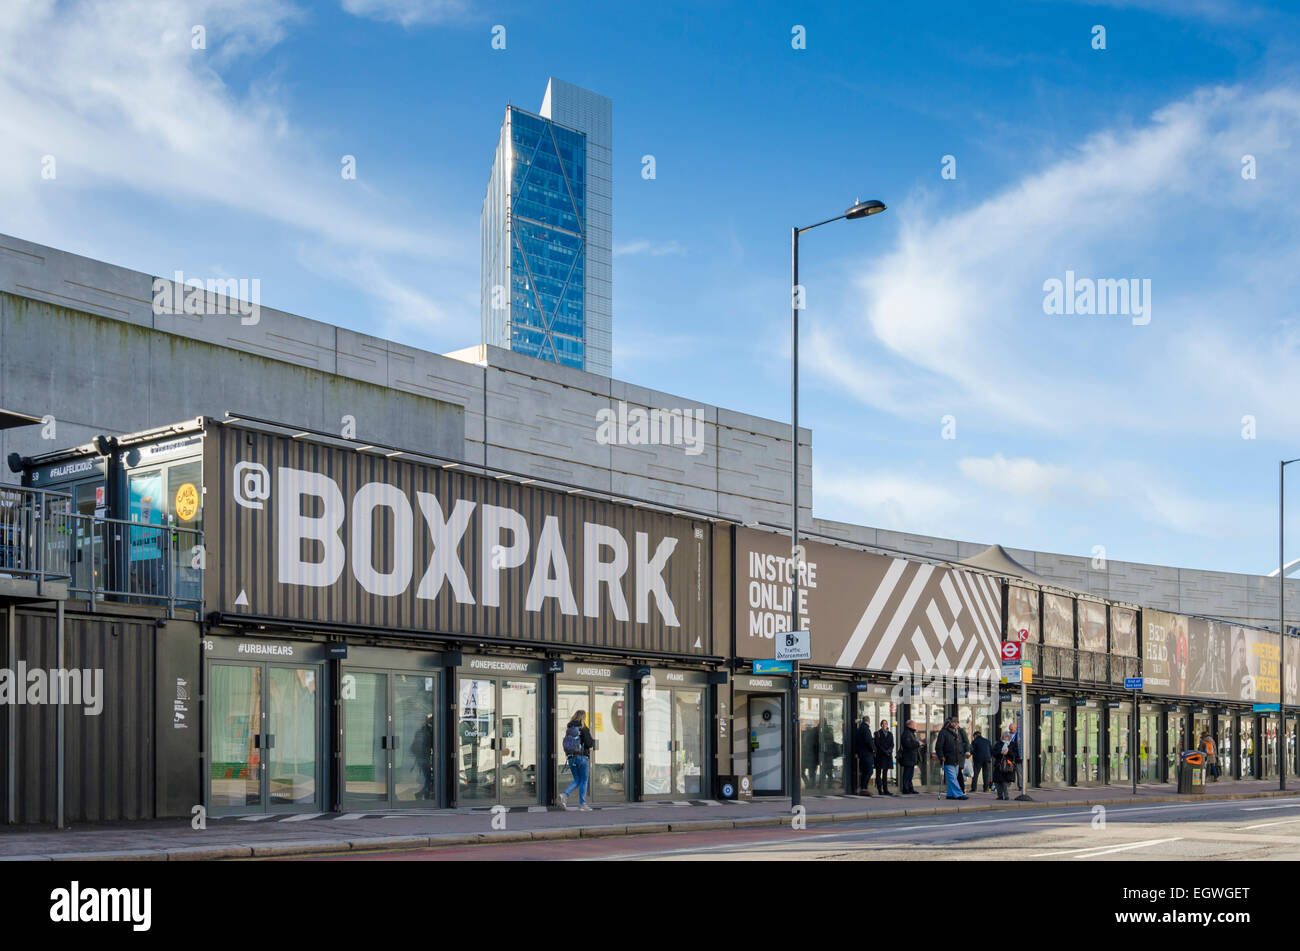 Boxpark, East London, UK Photo Stock